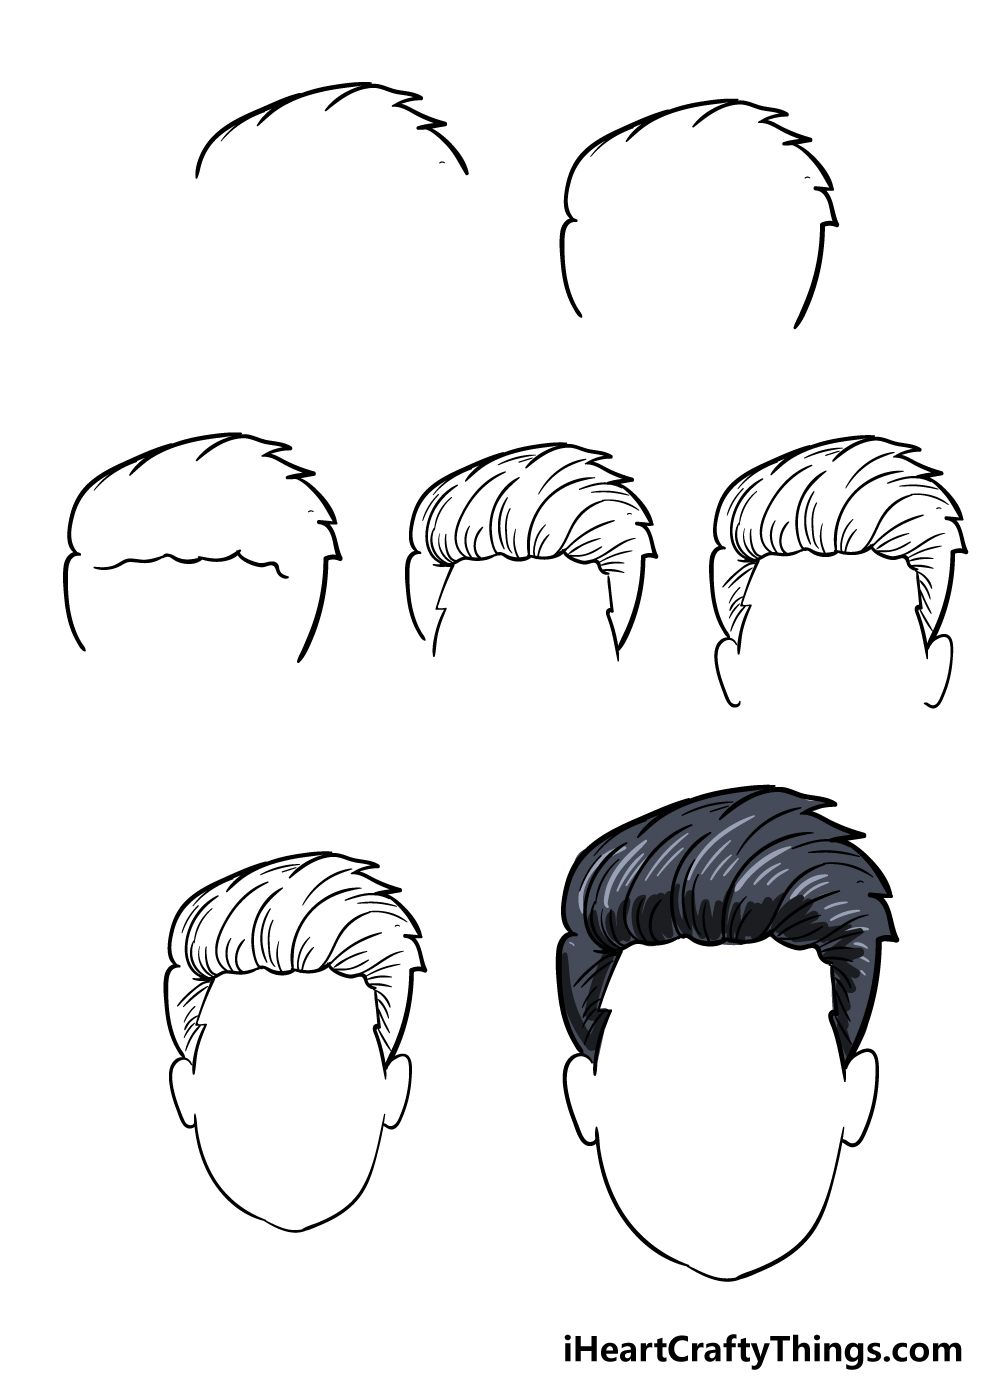 how to draw boy's hair in 6 steps